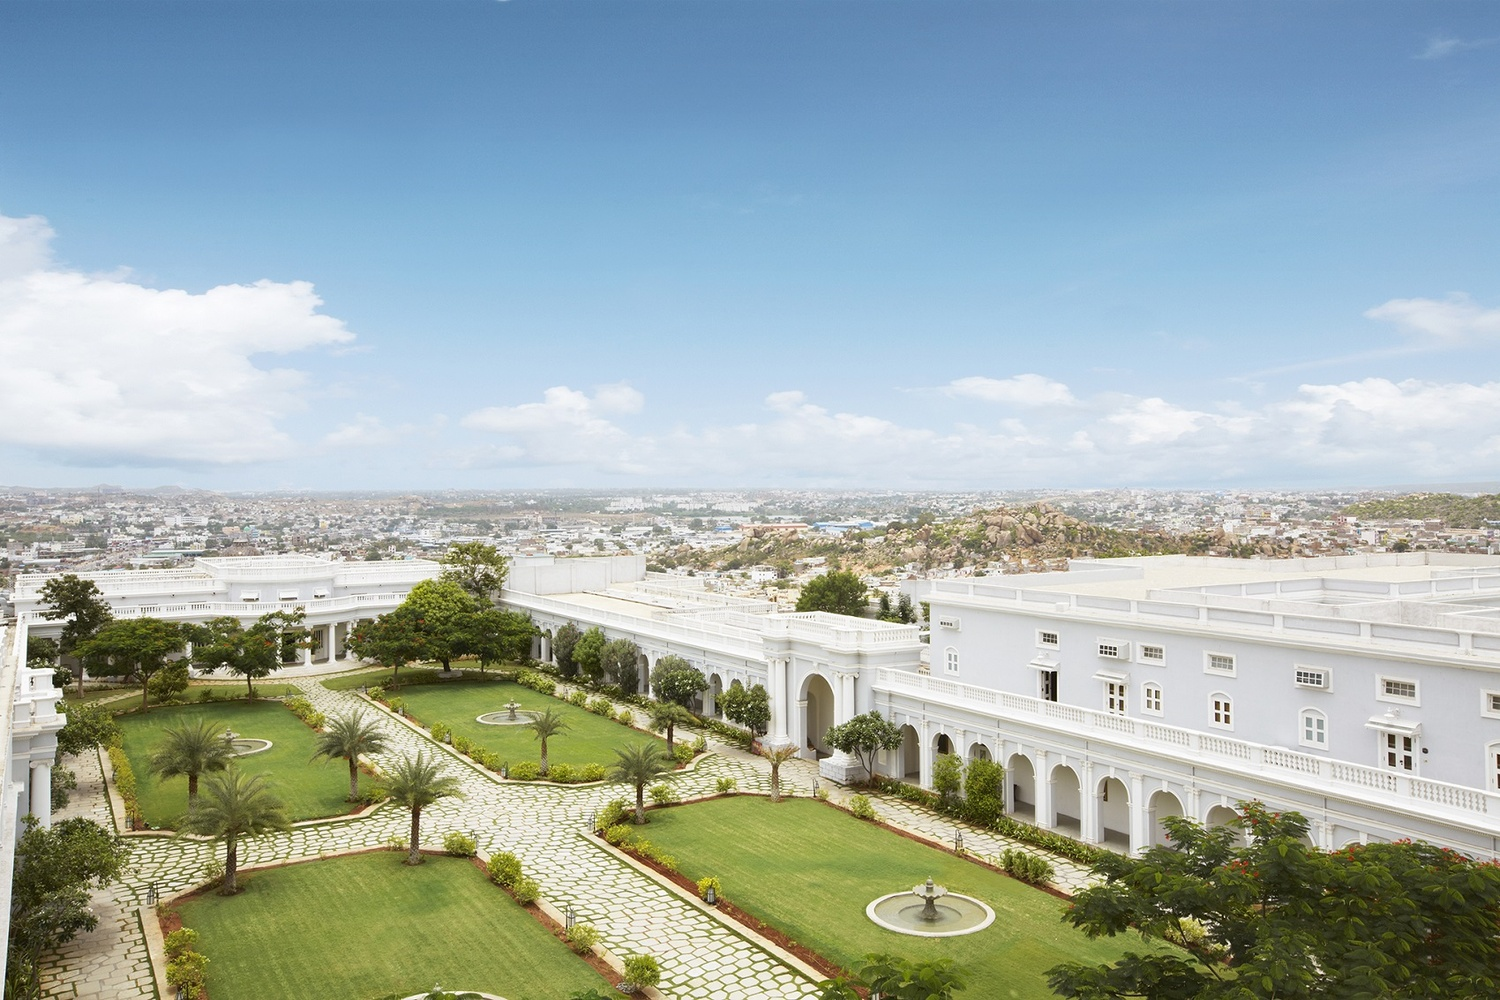 Taj Falaknuma Palace Falaknuma Hyderabad Banquet Hall Wedding Lawn Weddingz In